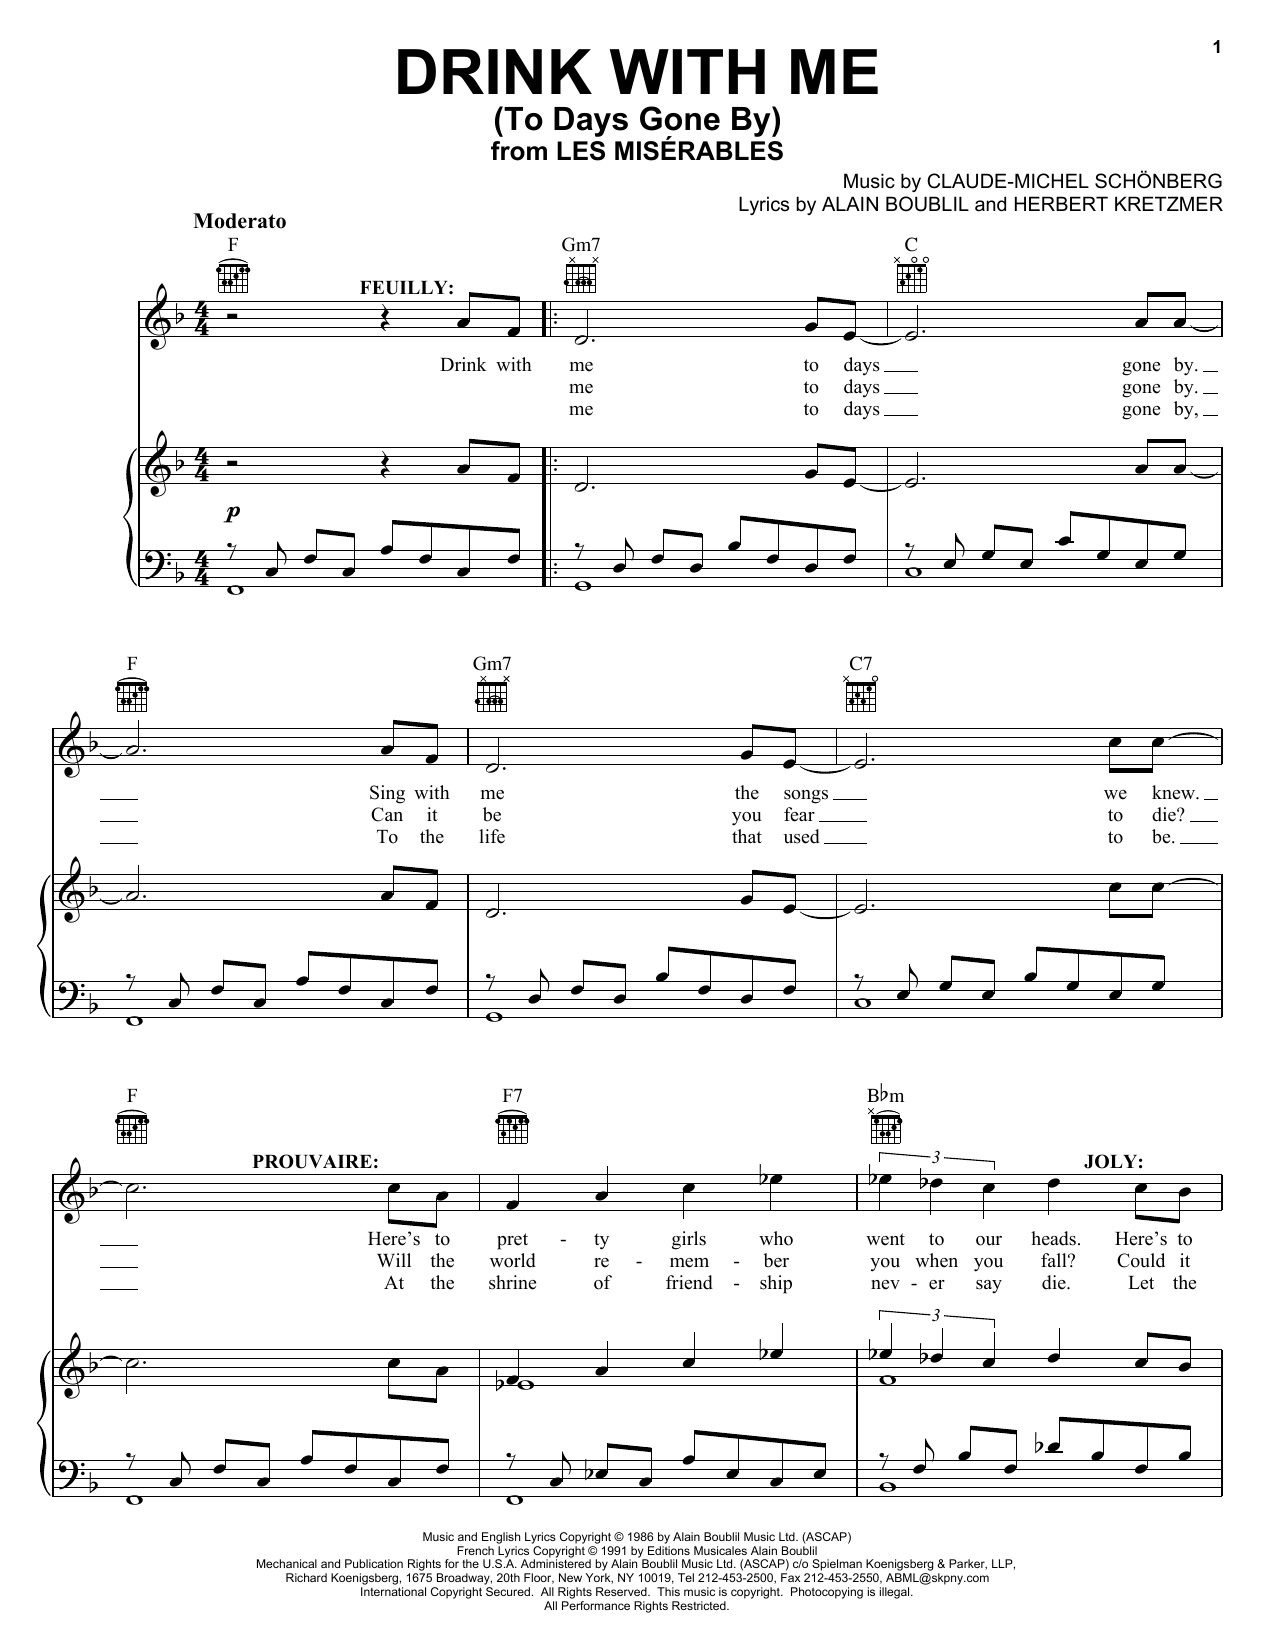 Boublil and Schonberg Drink With Me (To Days Gone By) (from Les Miserables) sheet music preview music notes and score for Piano, Vocal & Guitar (Right-Hand Melody) including 2 page(s)